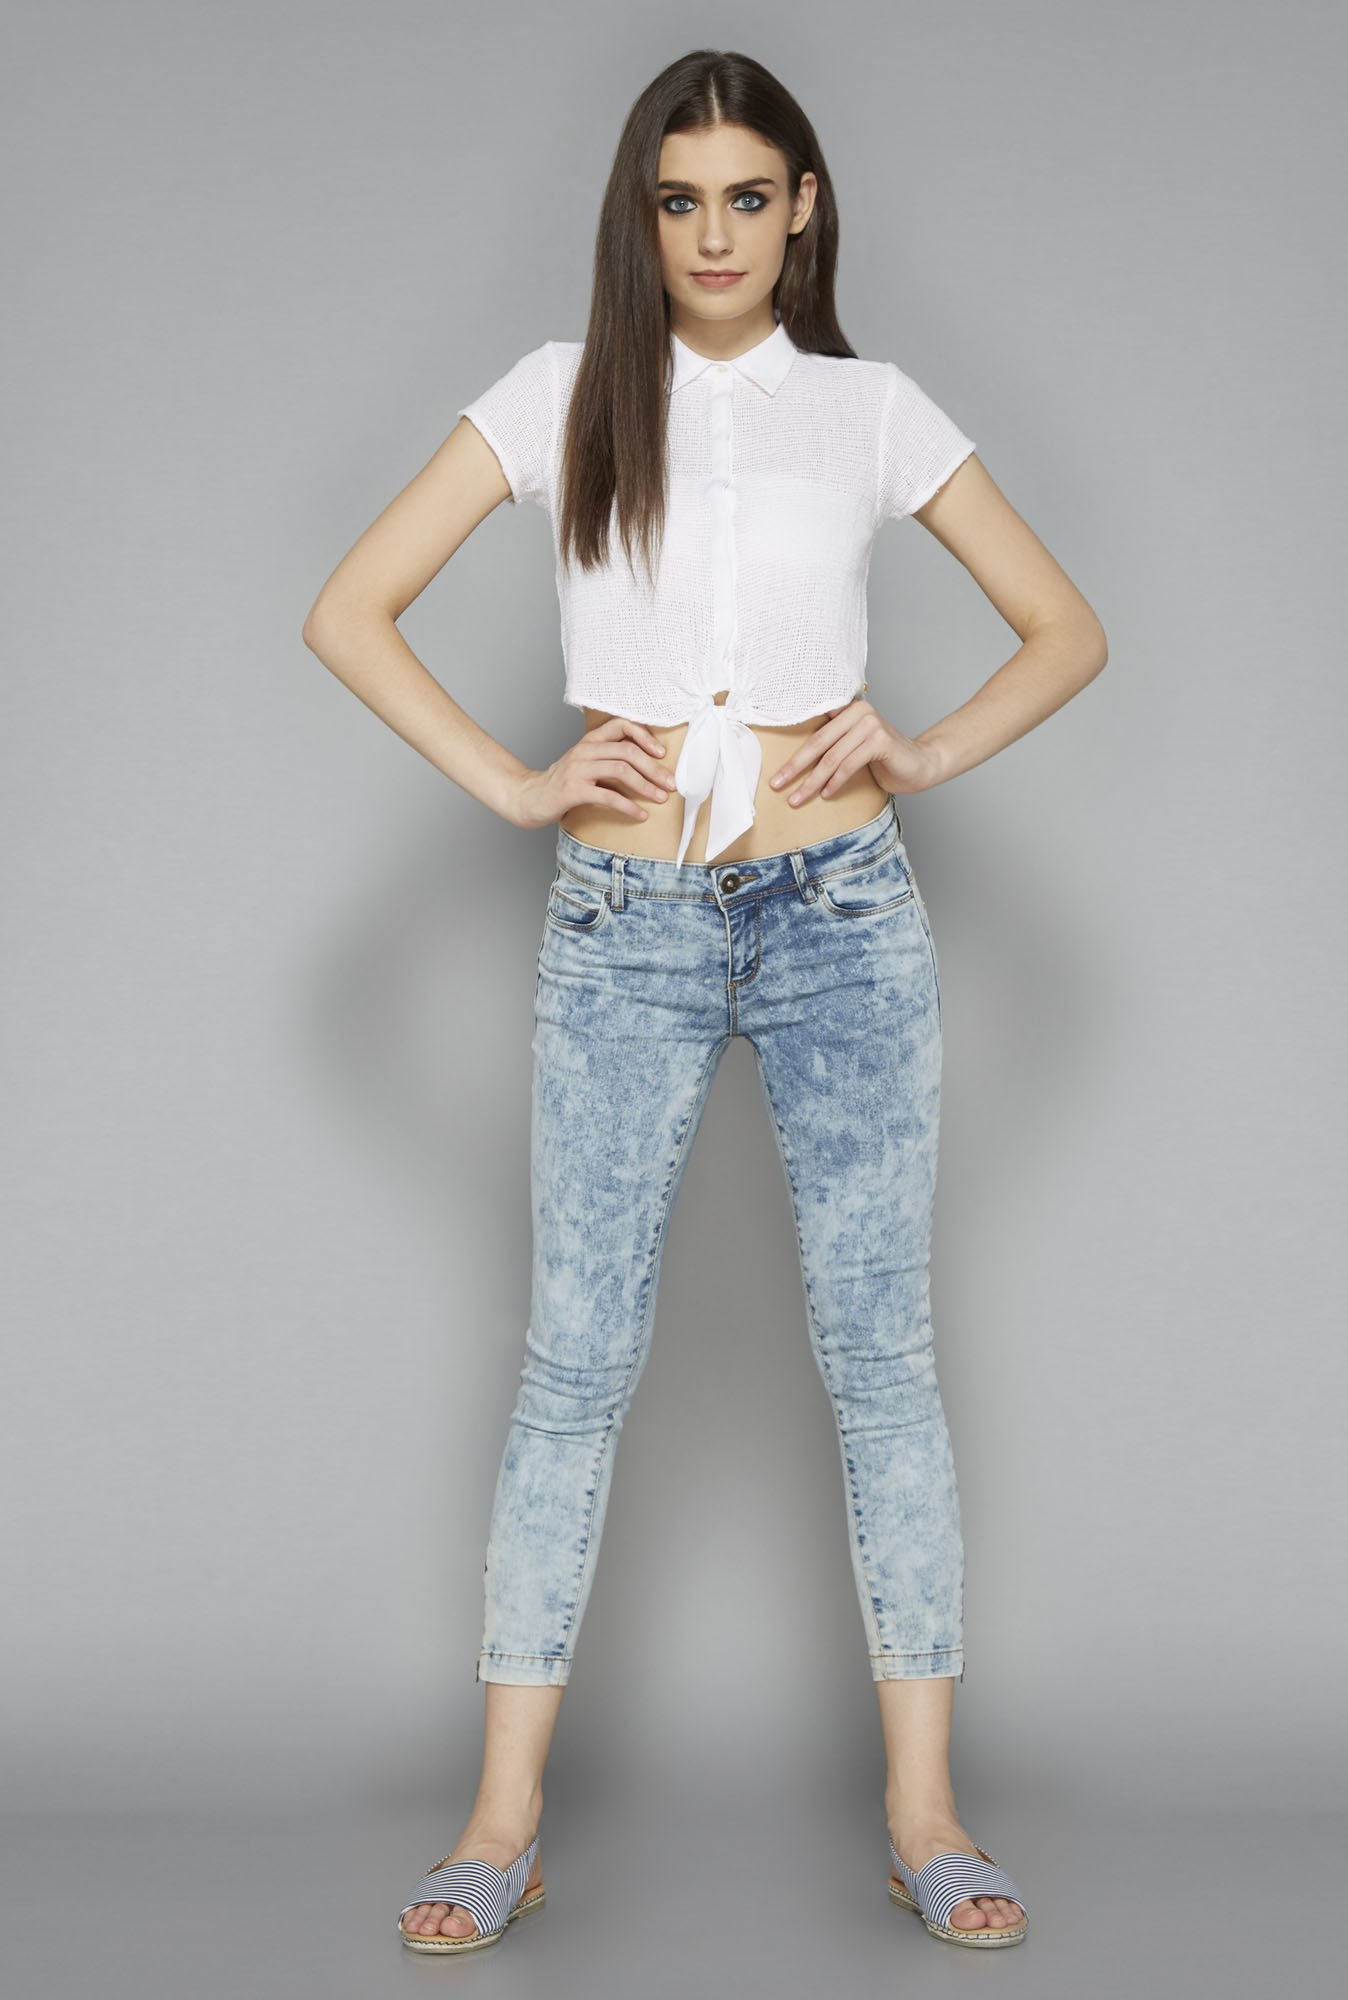 Nuon by Westside White Scooty Lace Crop Top